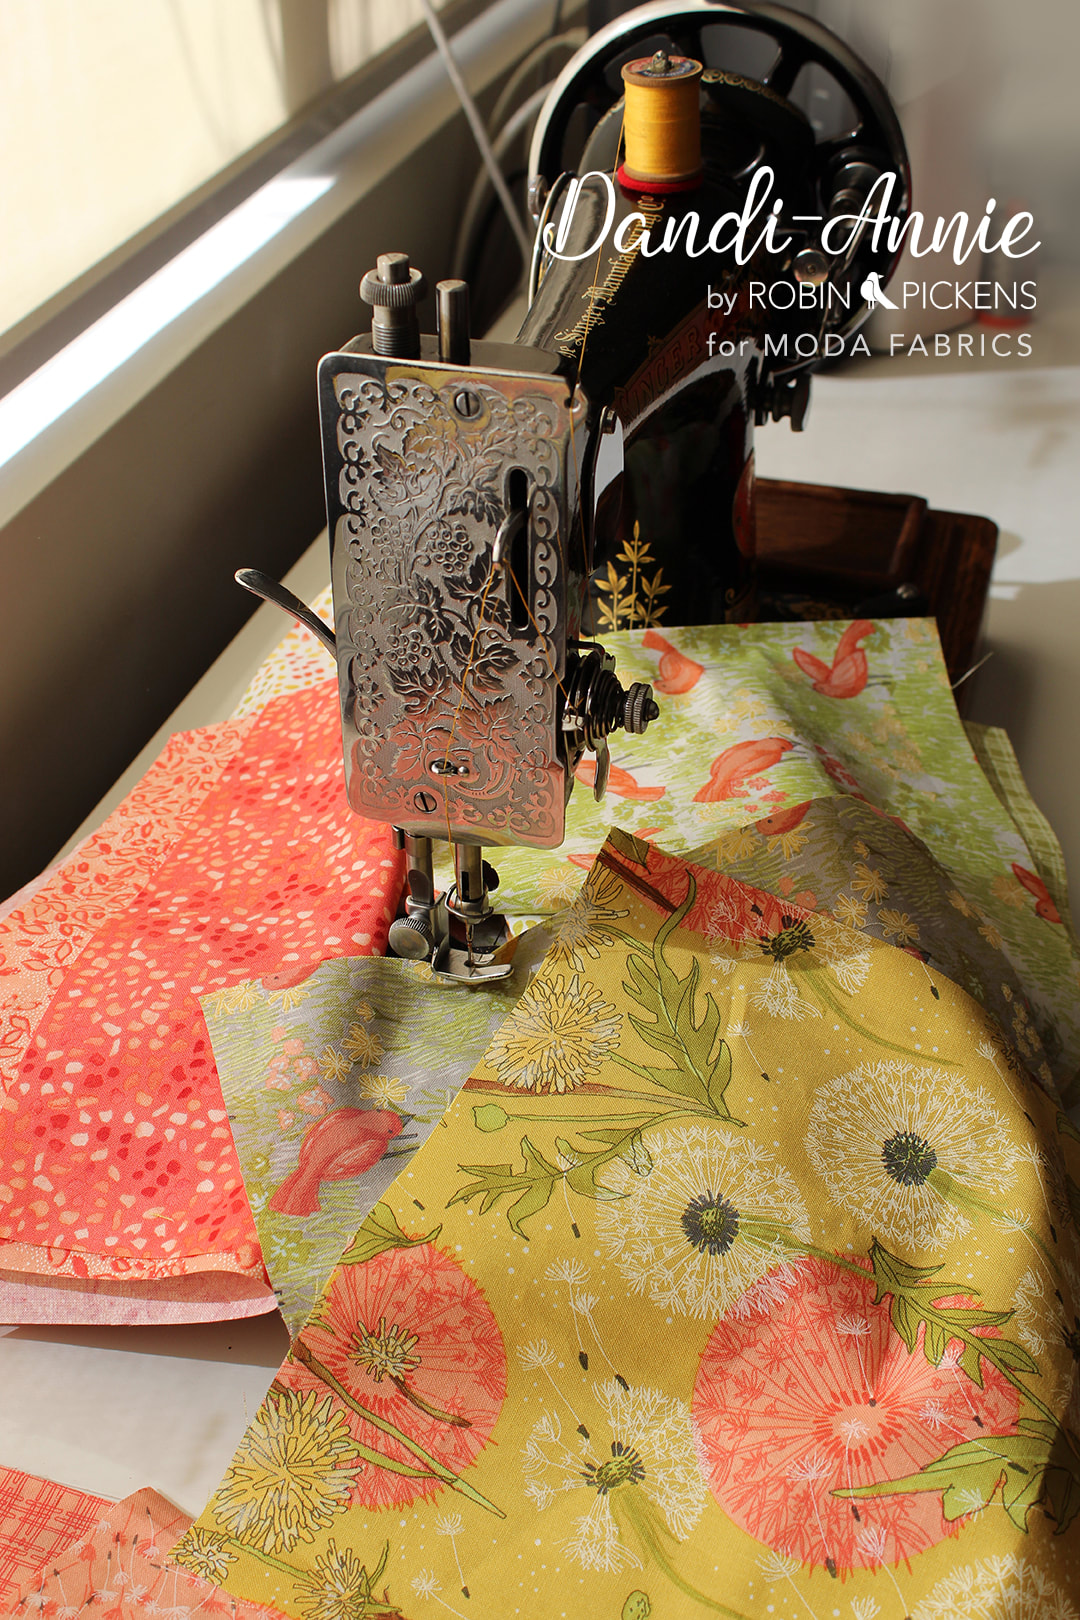 Dandi Annie fabric for Moda by Robin Pickens with dandelion and birds with vintage singer sewing machine.